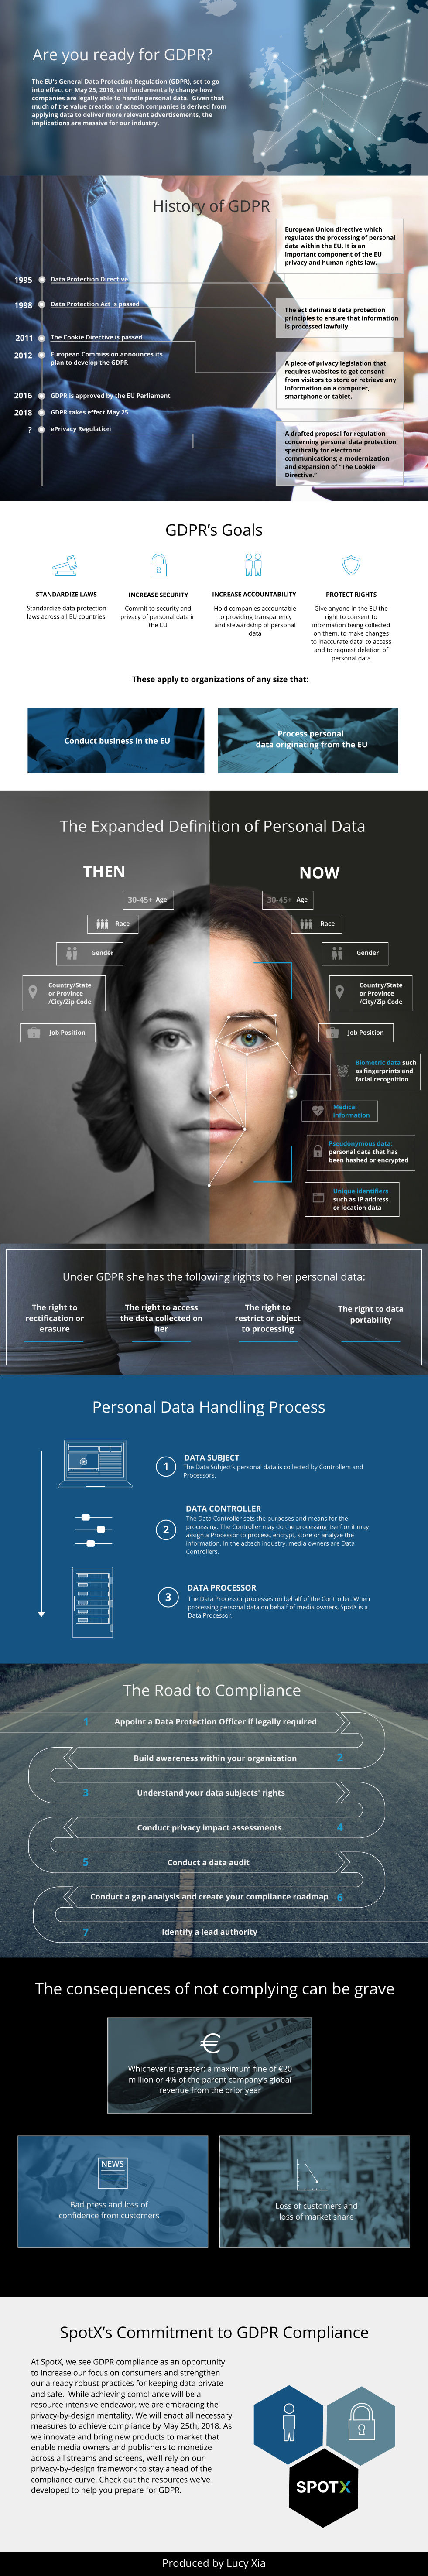 Infographic: GDPR Readiness